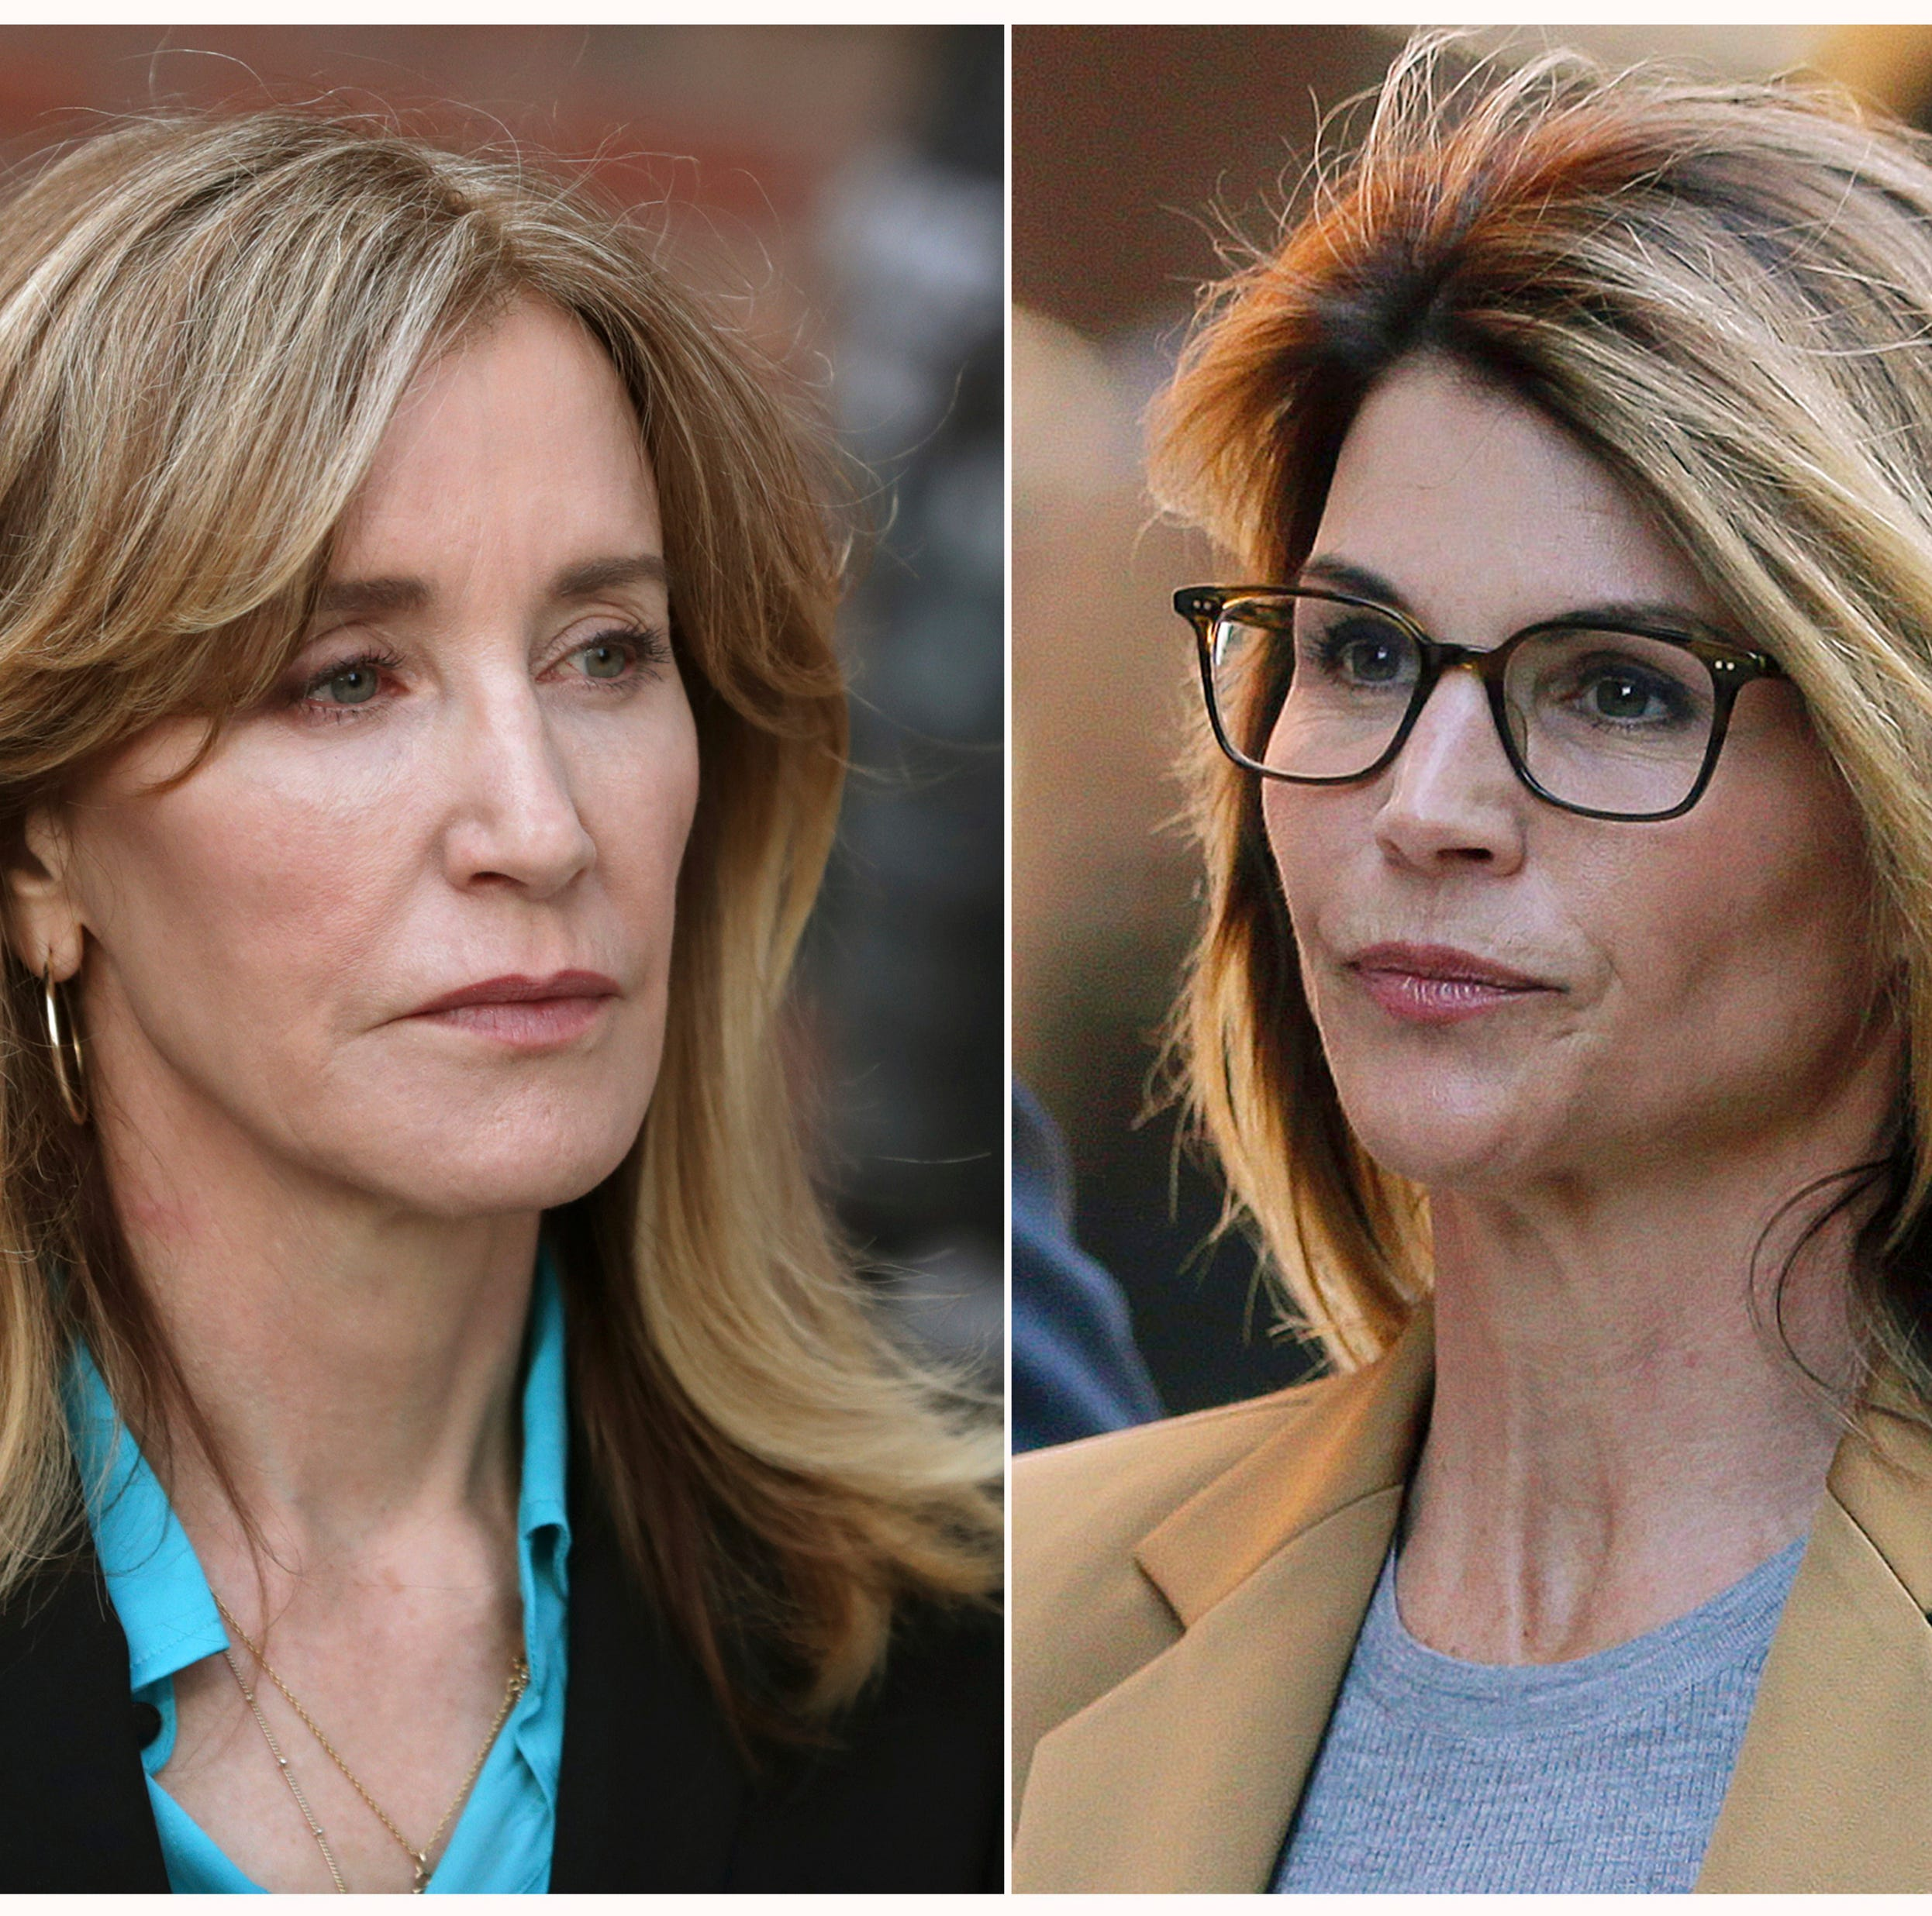 More arrests could be coming 'in the near future' in college admissions case, prosecutors say